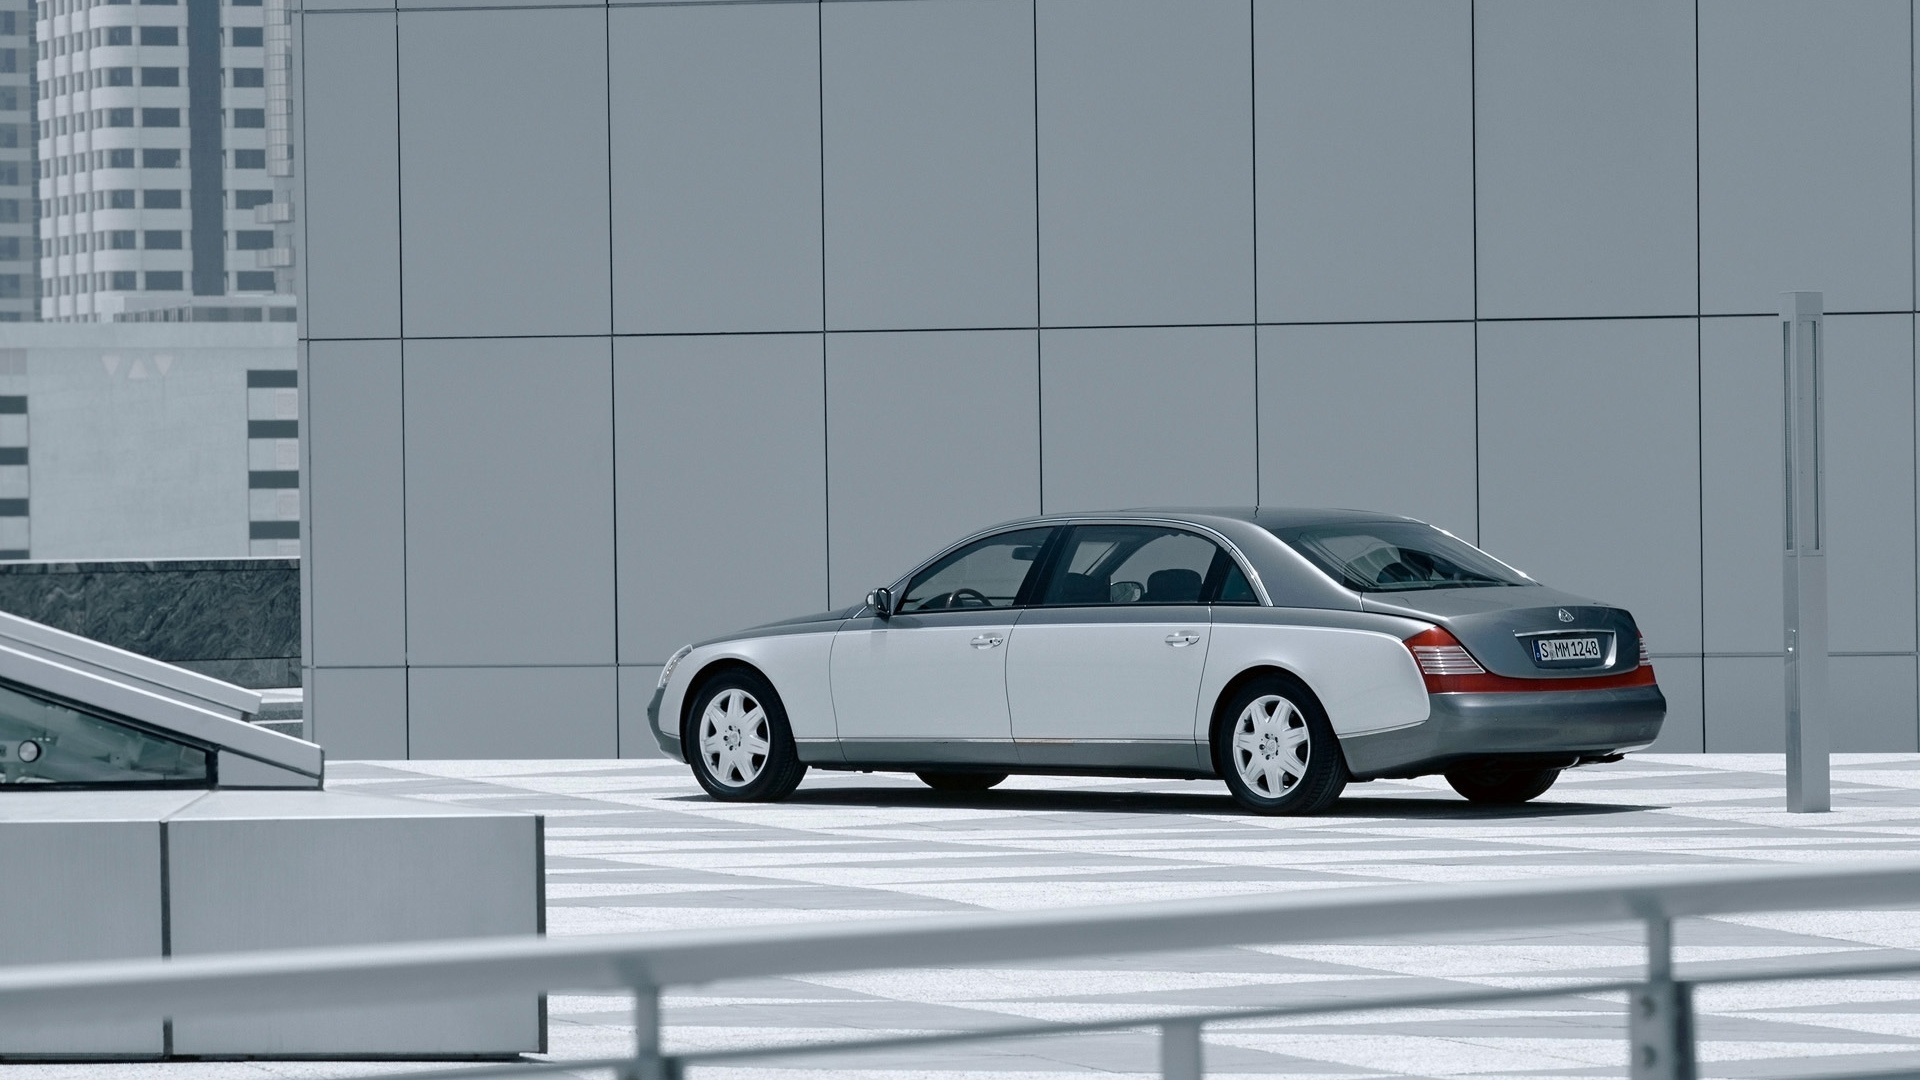 Maybach 62 Outside Left Front 3 for 1920 x 1080 HDTV 1080p resolution